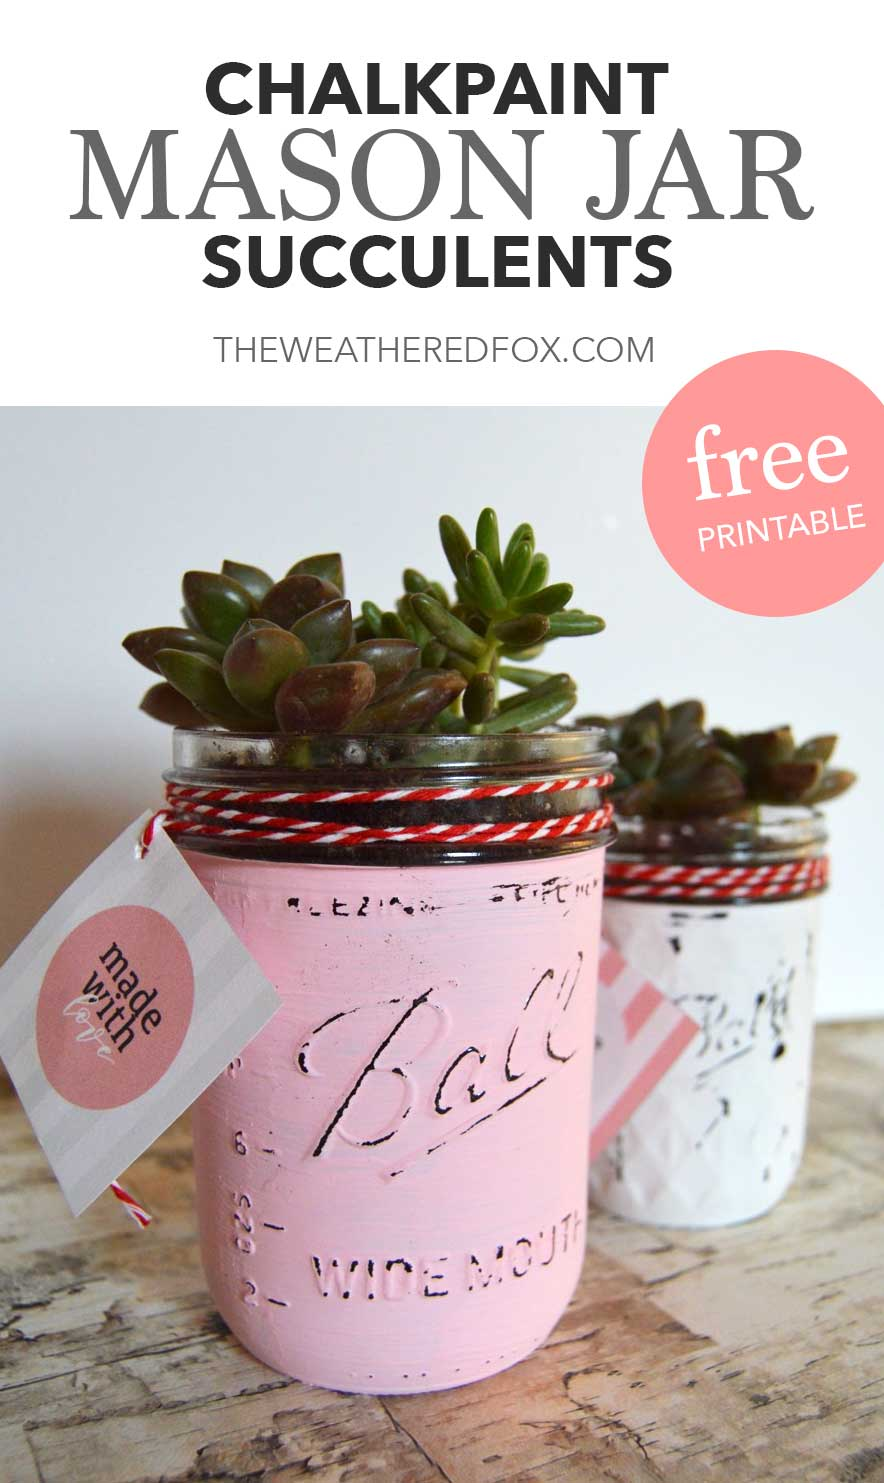 Chalkpaint Mason Jar Succulents With Printable The Weathered Fox